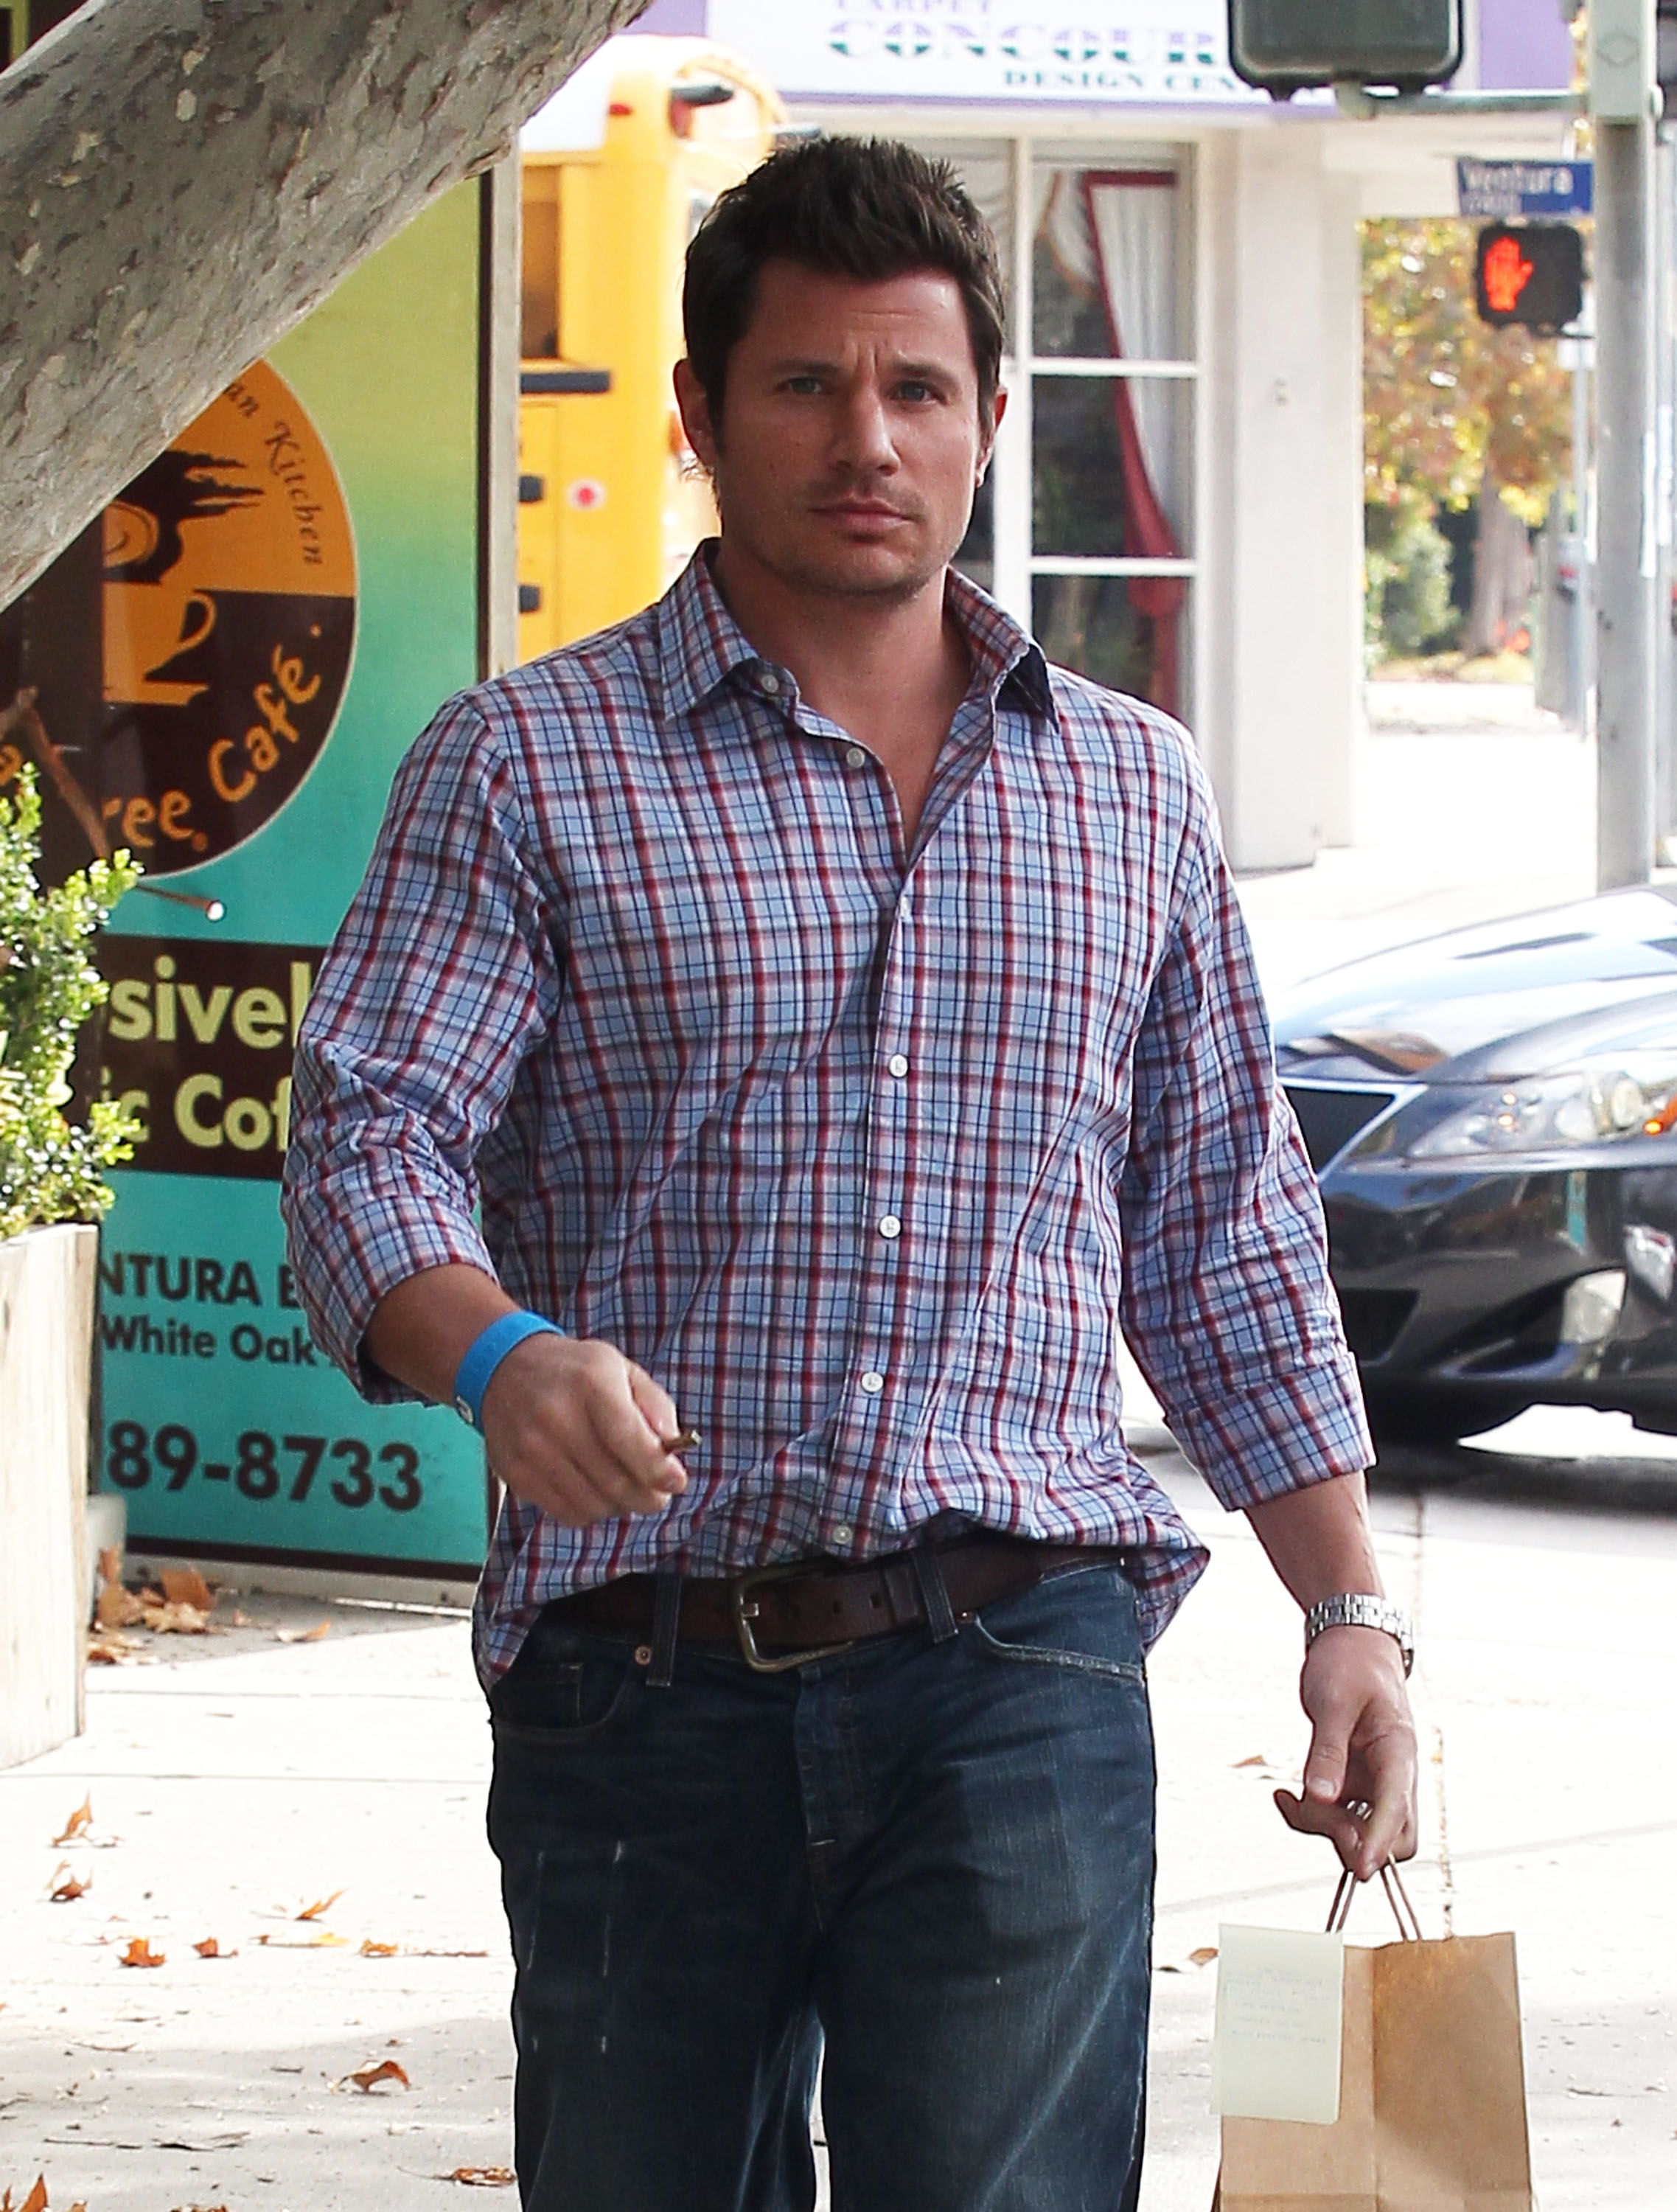 nick lachey patience переводnick lachey all in my head, nick lachey 2016, nick lachey and jessica simpson song, nick lachey shades of blue mp3, nick lachey vanessa minnillo, nick lachey youtube, nick lachey foo fighters, nick lachey patience, nick lachey where you are, nick lachey resolution, nick lachey this i swear mp3, nick lachey mp3, nick lachey age, nick lachey i swear, nick lachey one tree hill, nick lachey insta, nick lachey i can't hate you anymore lyrics, nick lachey patience перевод, nick lachey i do it for you, nick lachey baby